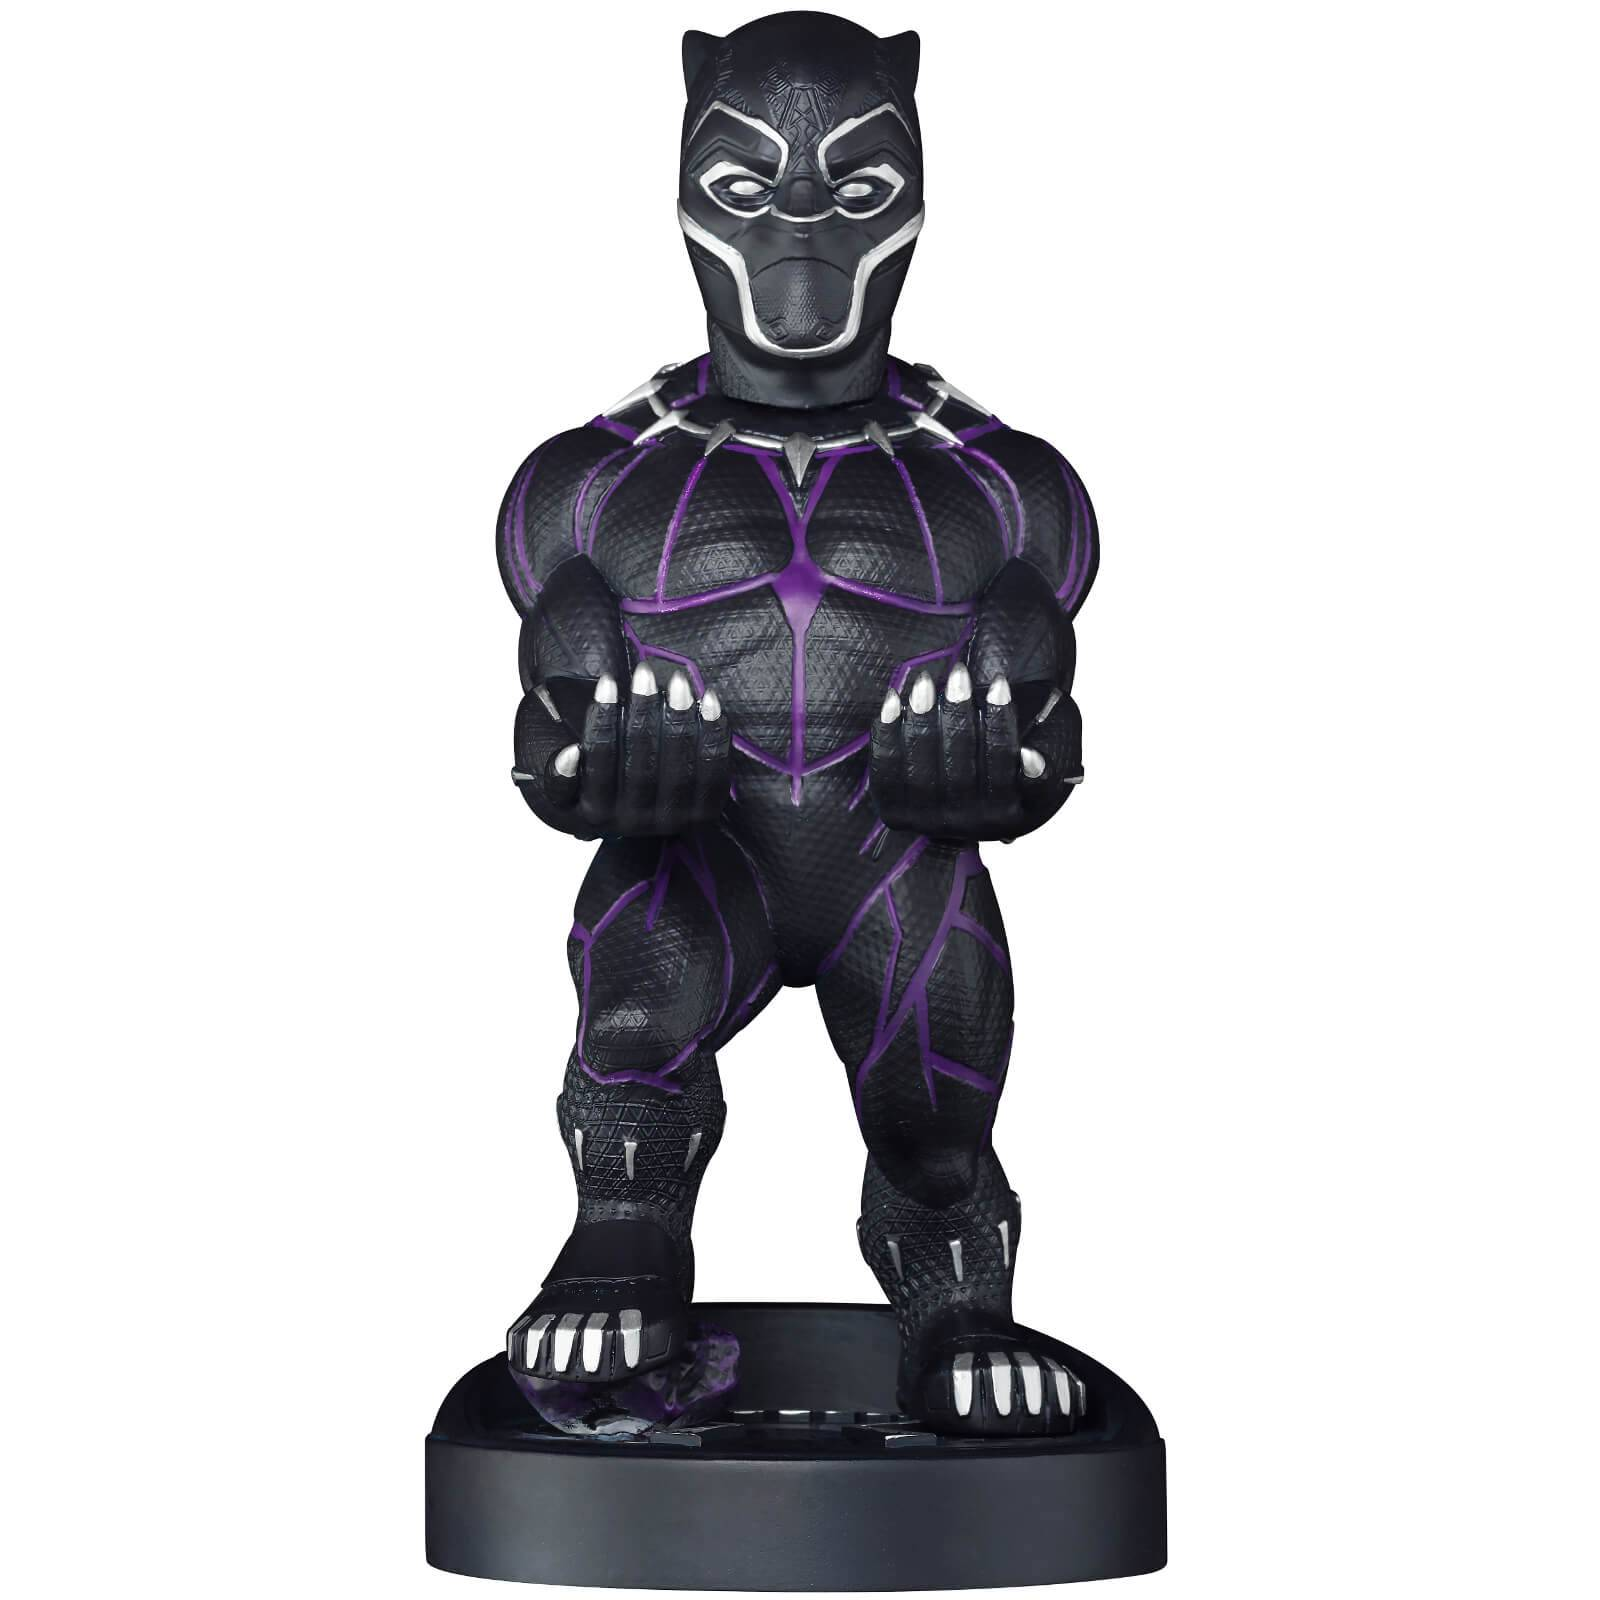 Cable Guys Marvel Black Panther 8 Inch Cable Guy Controller and Smartphone Stand-